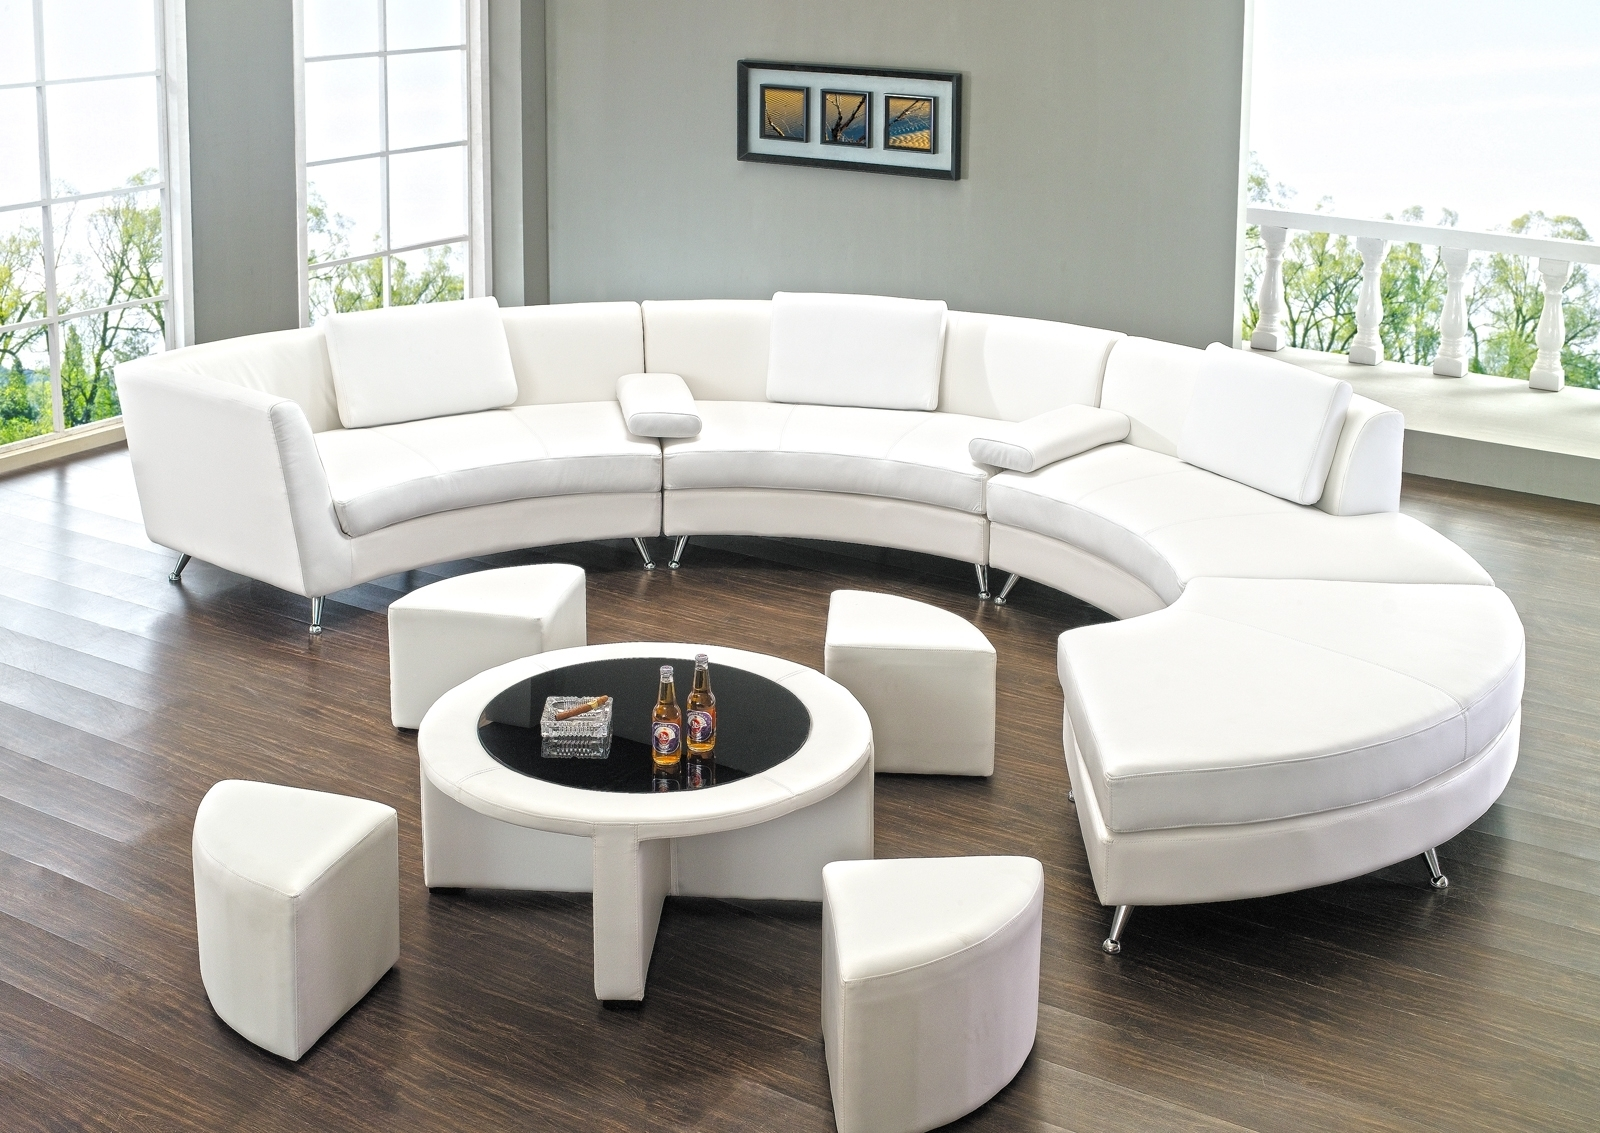 Round Sectional Sofa Has One Of The Best Kind Of Other Is Sectionals Throughout Round Sectional Sofas (View 2 of 10)